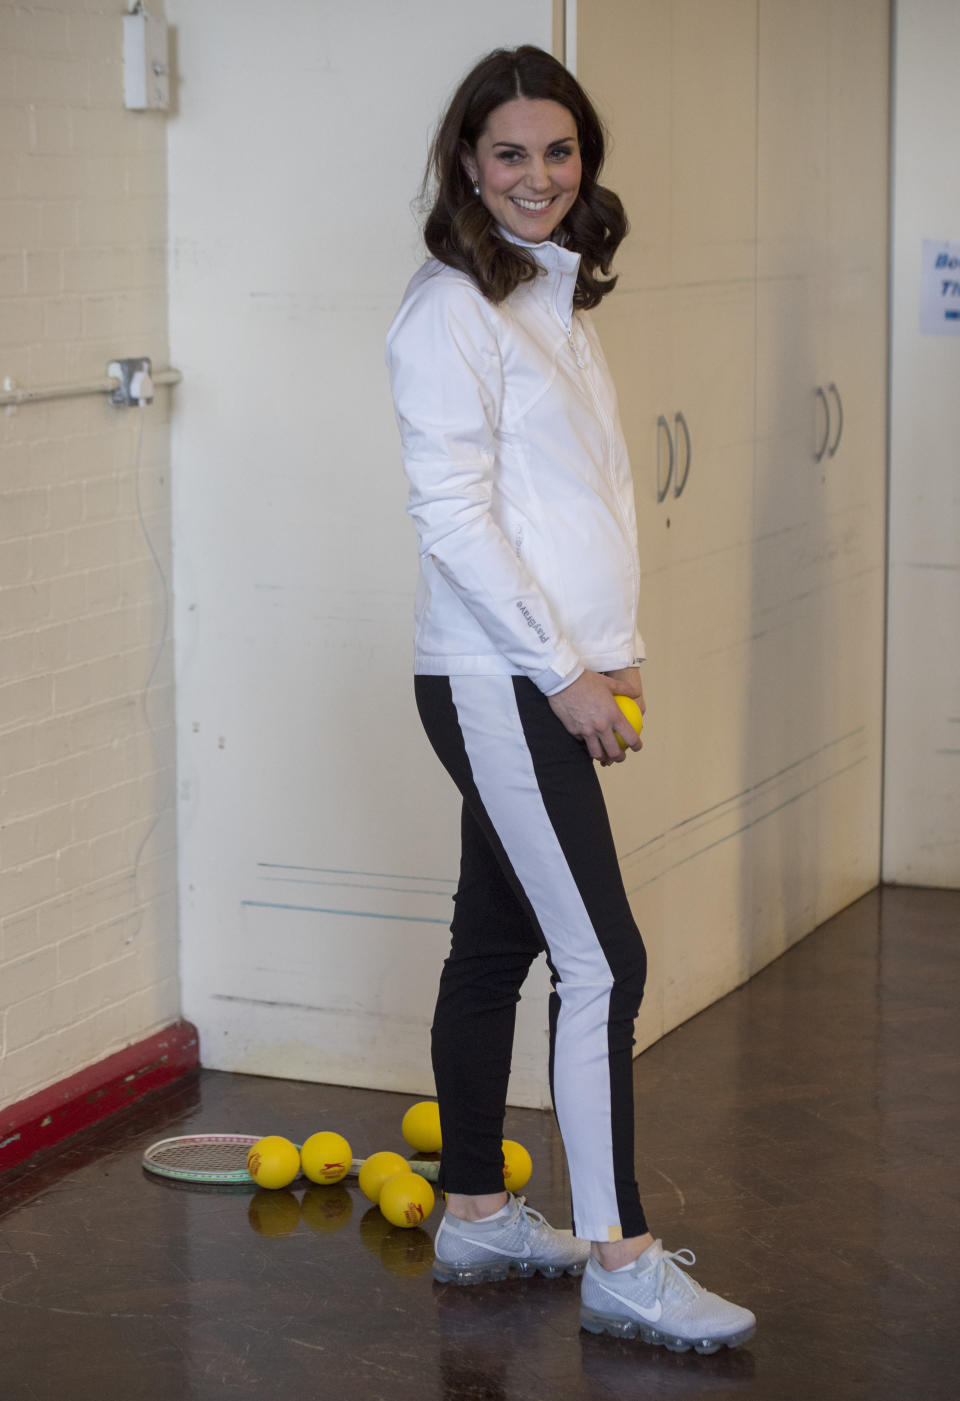 The Duchess of Cambridge showcased her blossoming baby bump in a zip-up jacket by Clarice [Photo: PA]